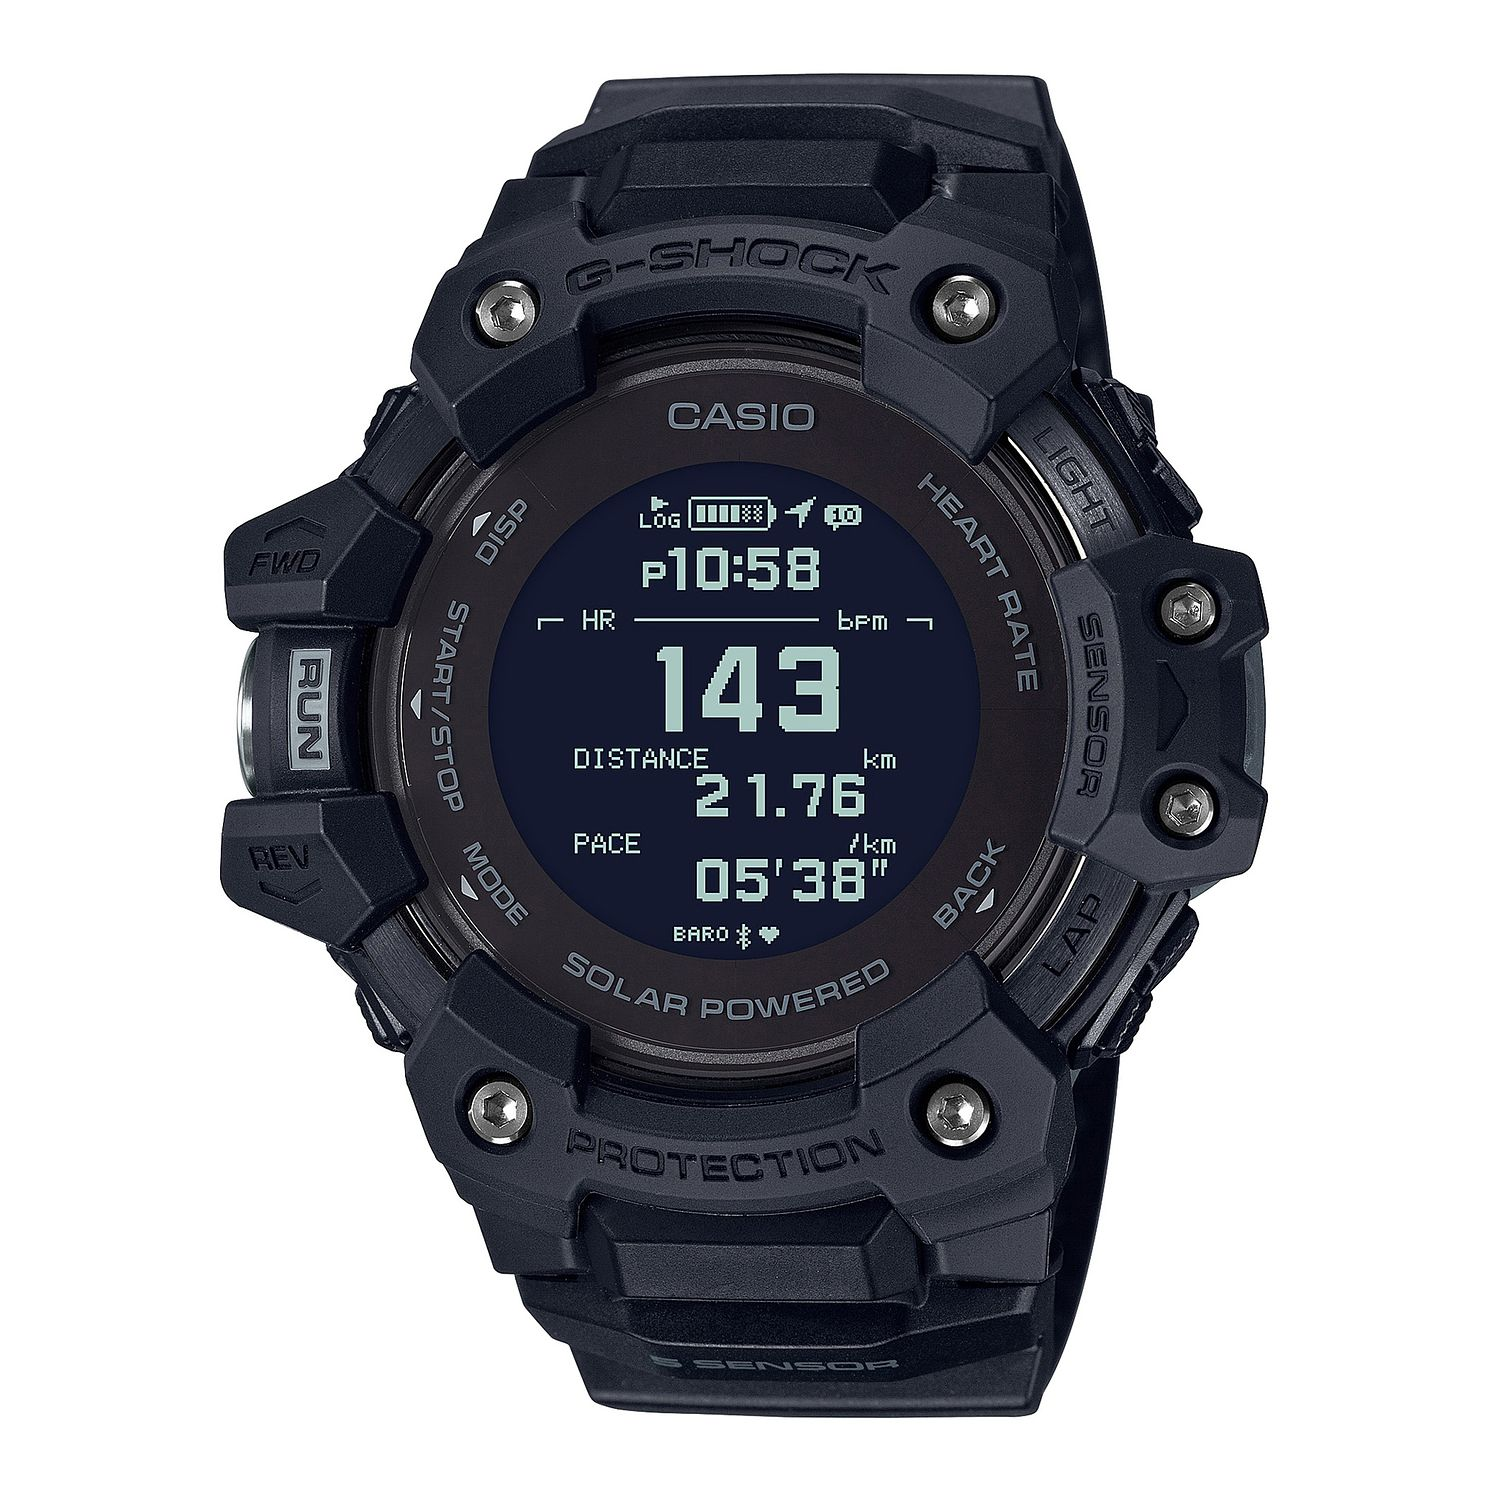 Casio G-Shock Heart Rate Monitor Black Resin Strap Watch - Product number 1097040